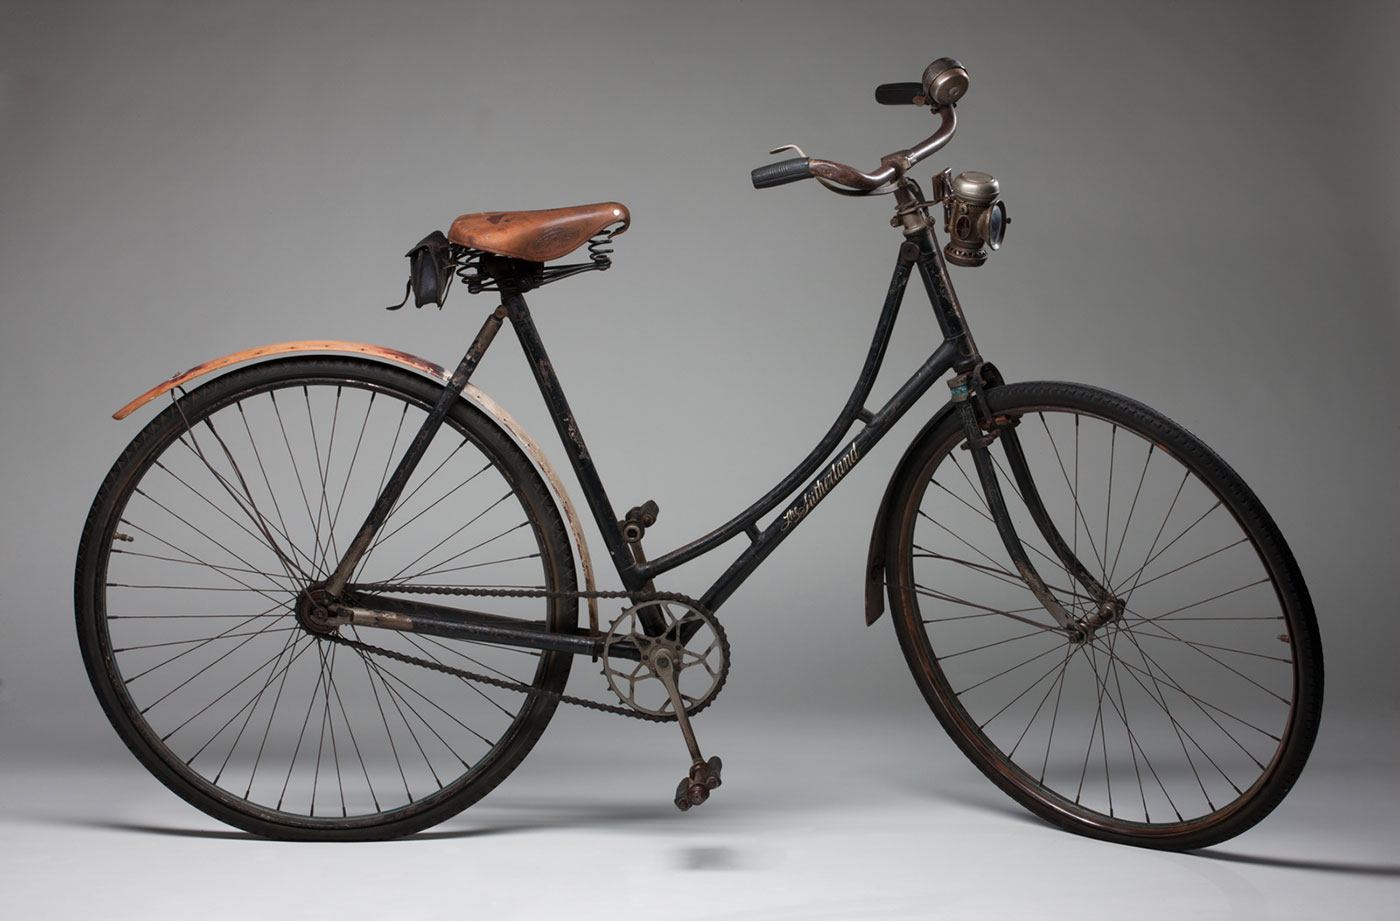 A ladies bicycle with a black painted metal frame, featuring a painted gold design on the front stem which reads 'The / SUTHERLAND / CYCLE / & MOTOR / WORKS / OPPOSITE / TOORAK STATION / MELBO[UR]NE. It has an oil lamp and a bell attached to the front handle bars and a tool/repair kit attached under the back of the seat. It has wooden mud guards, a steering lock for the front wheel, a front stirrup brake, a rear hand break and a leather saddle (seat) made by 'BROOKS'. A skip tooth chain wheel and pins hold the bottom bracket cups in position.